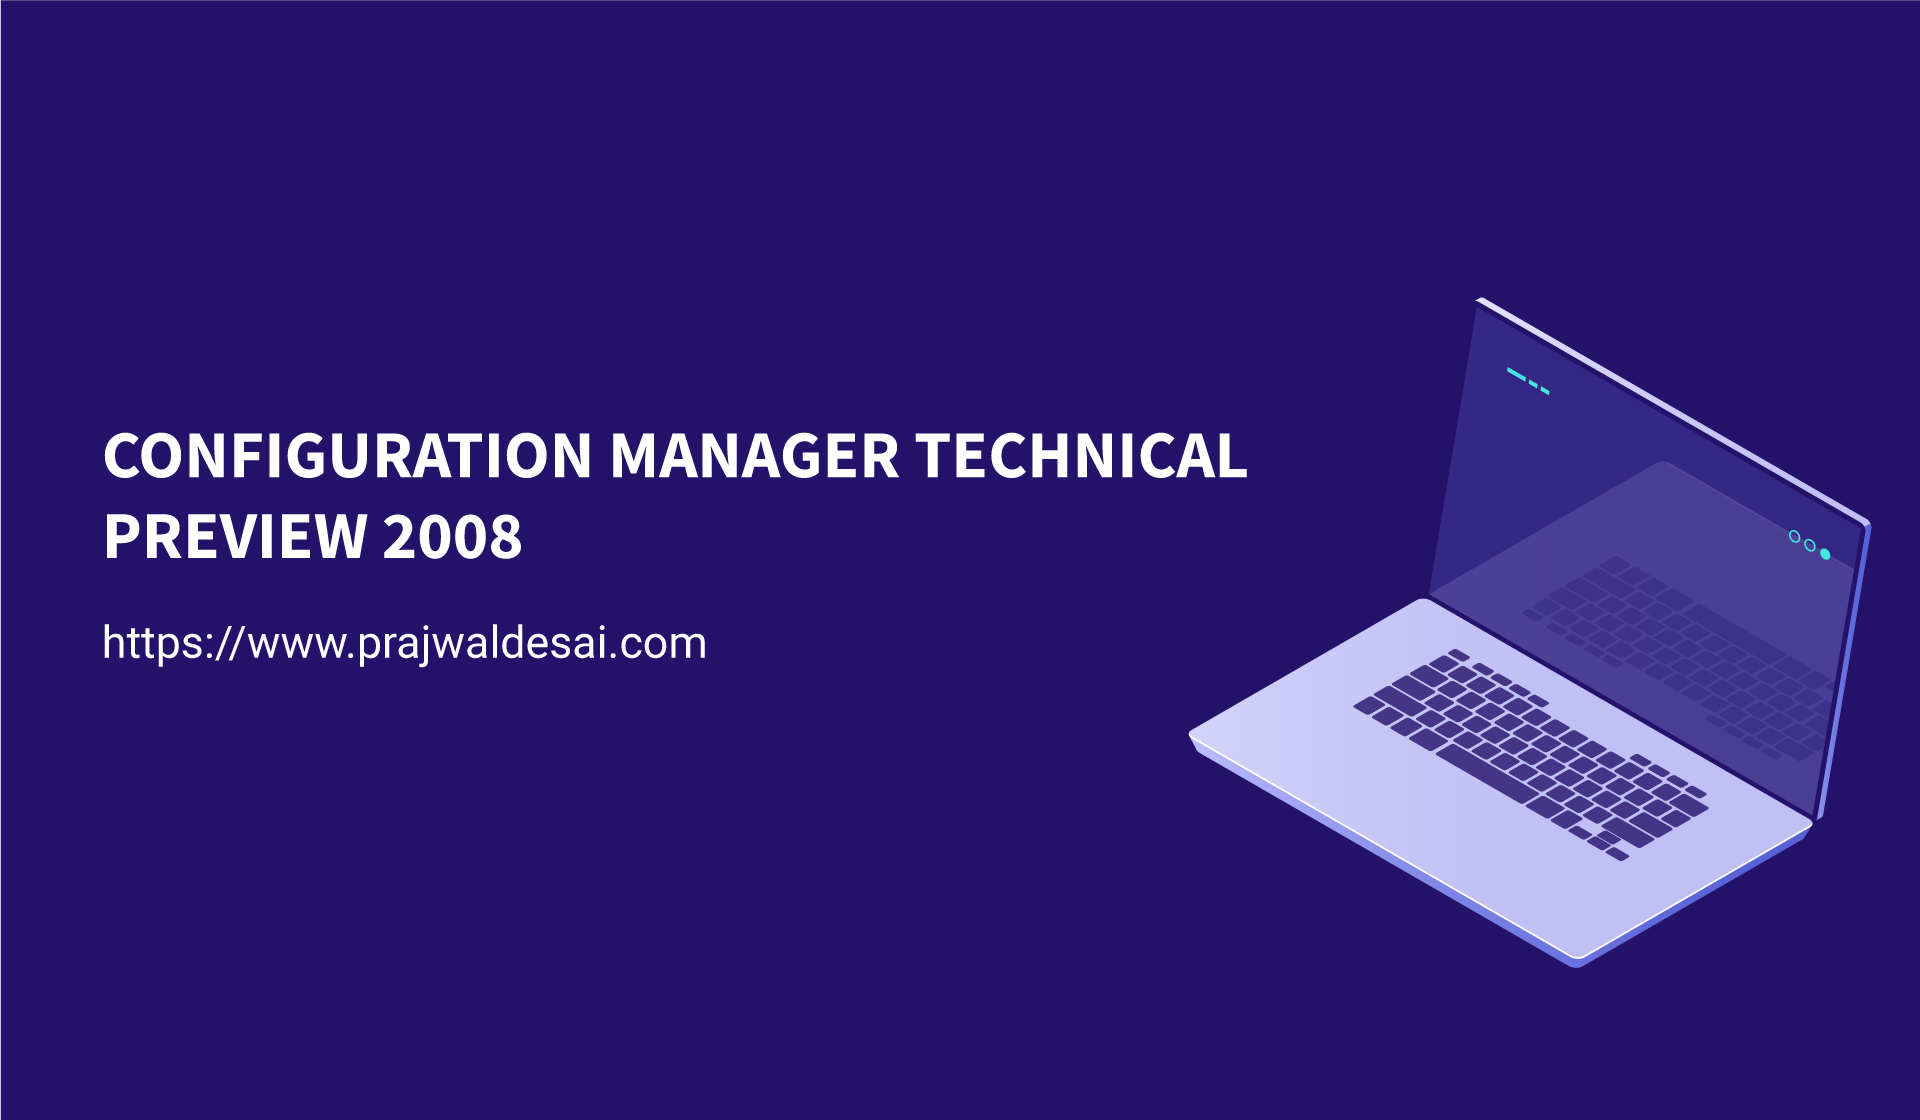 Configuration Manager Technical Preview 2008